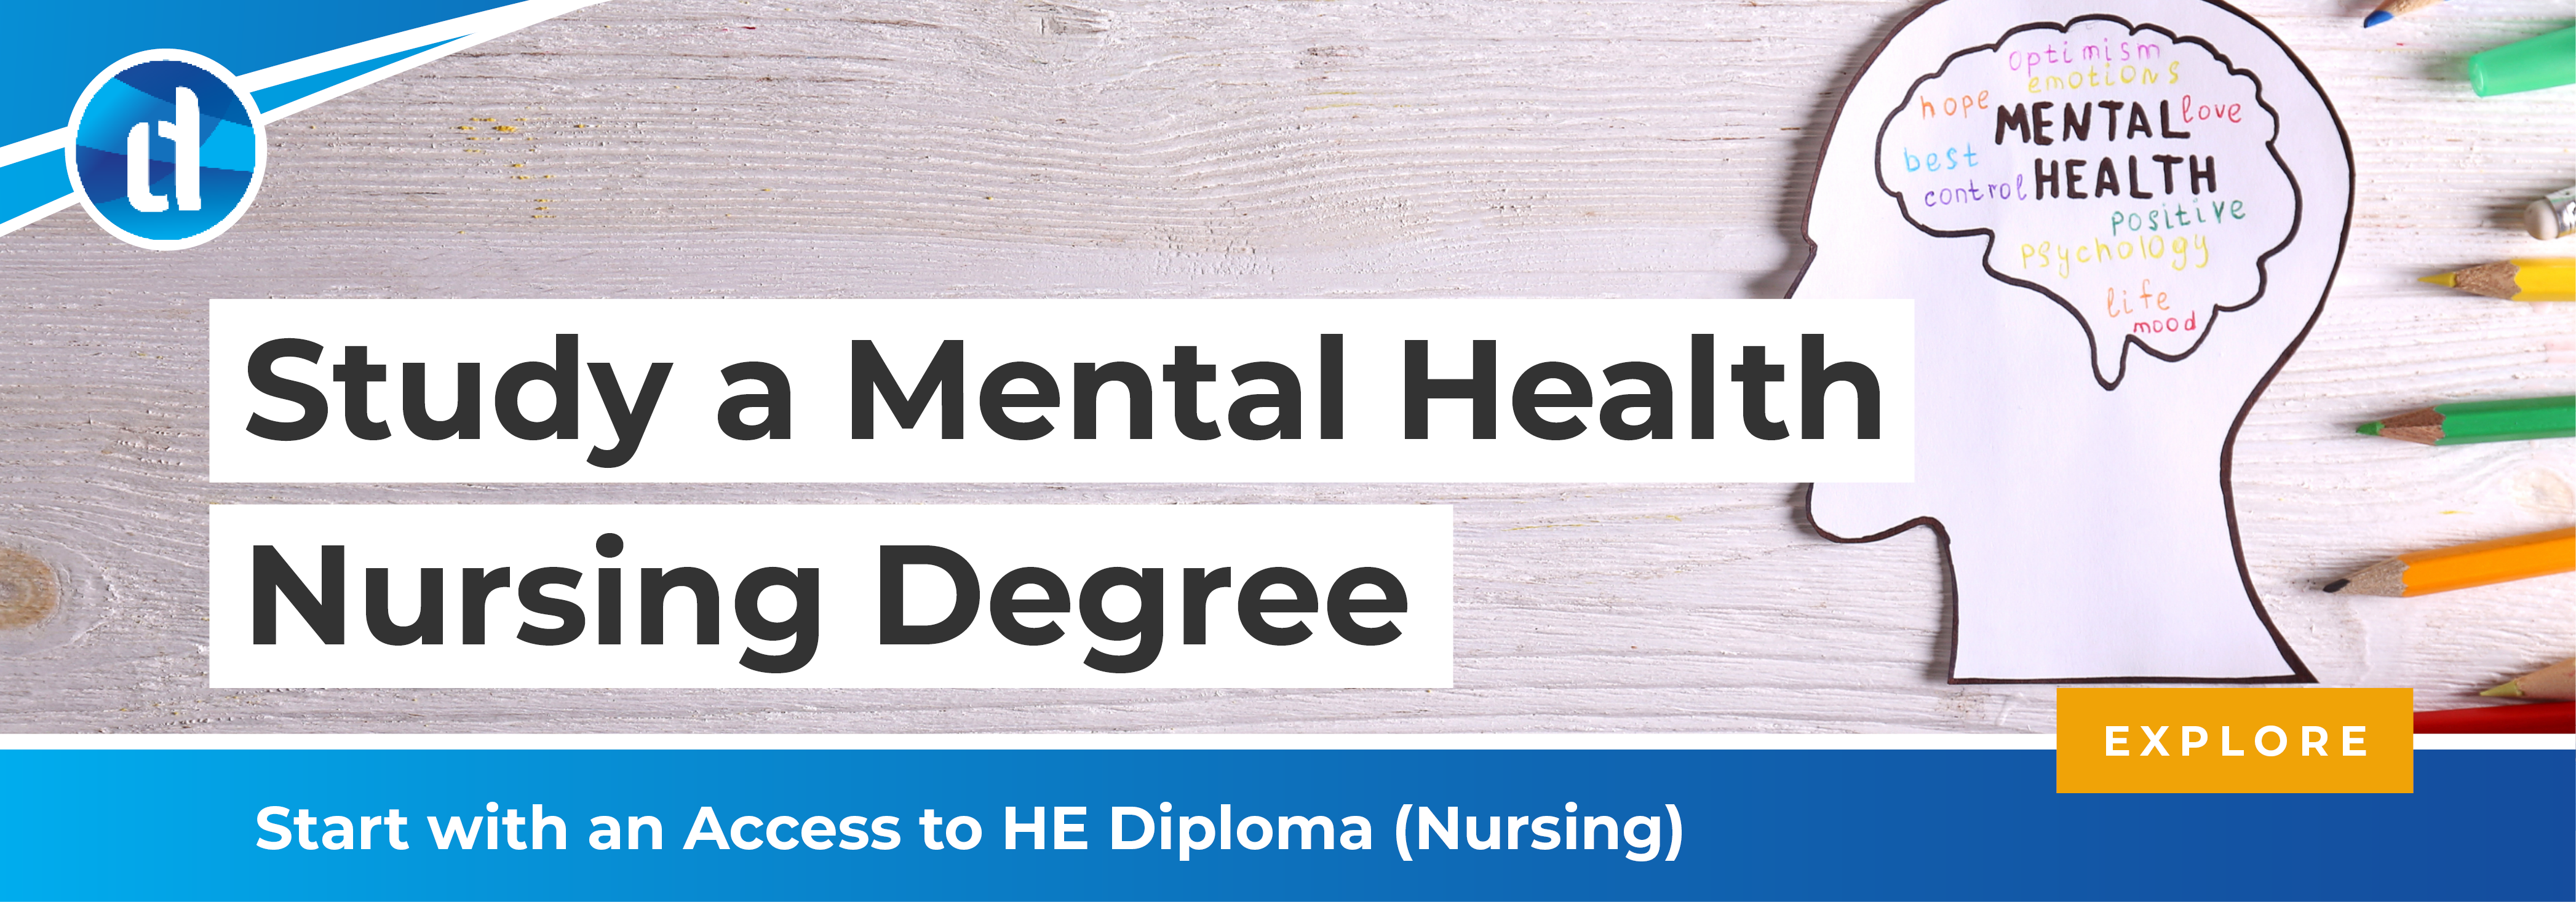 learndirect - Study a Mental Health Nurse Degree with an Access to HE Diploma